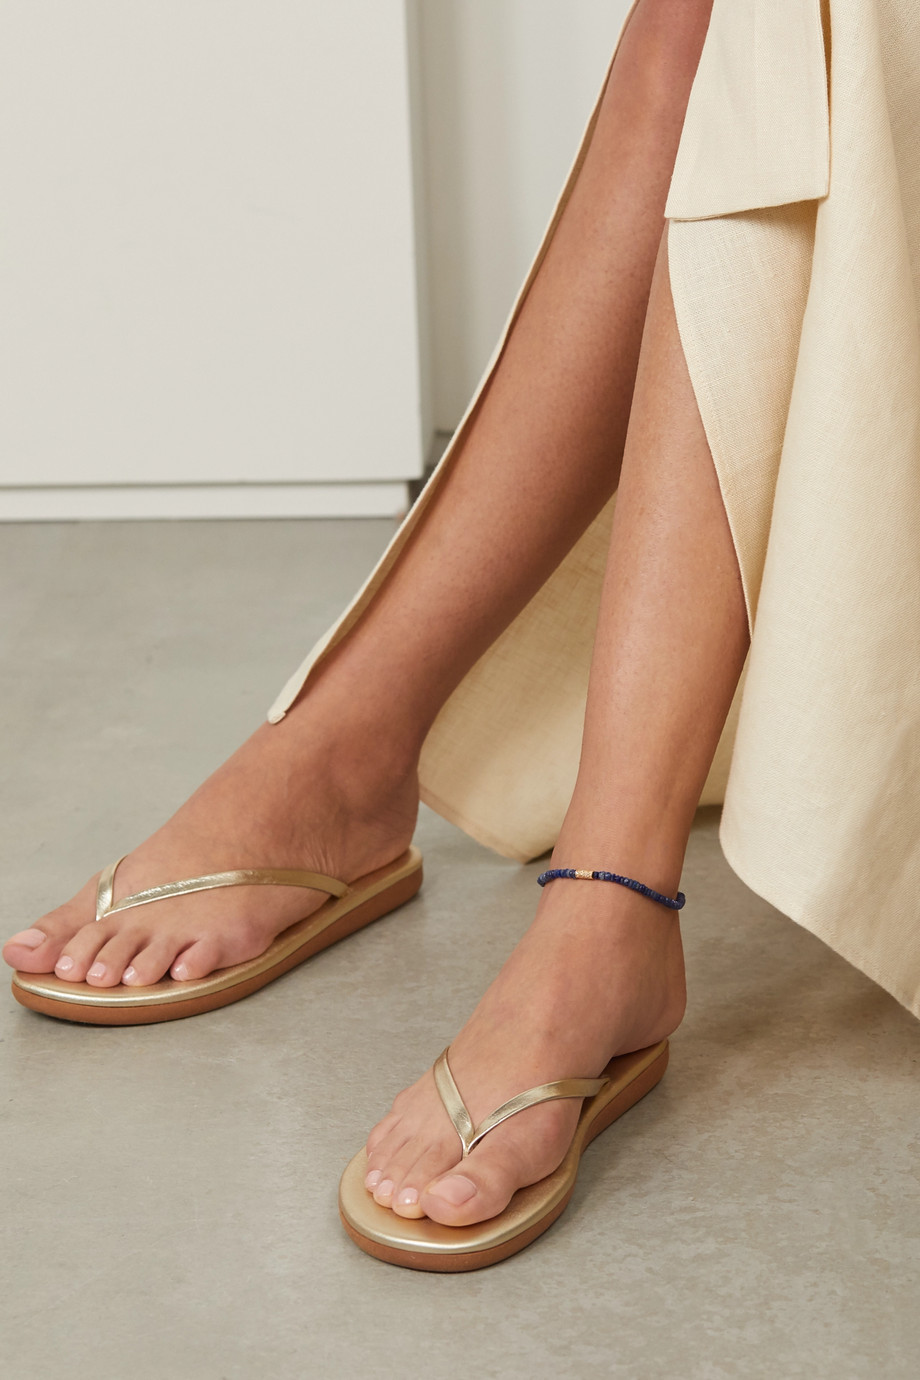 JACQUIE AICHE 14-karat gold, lapis and diamond anklet